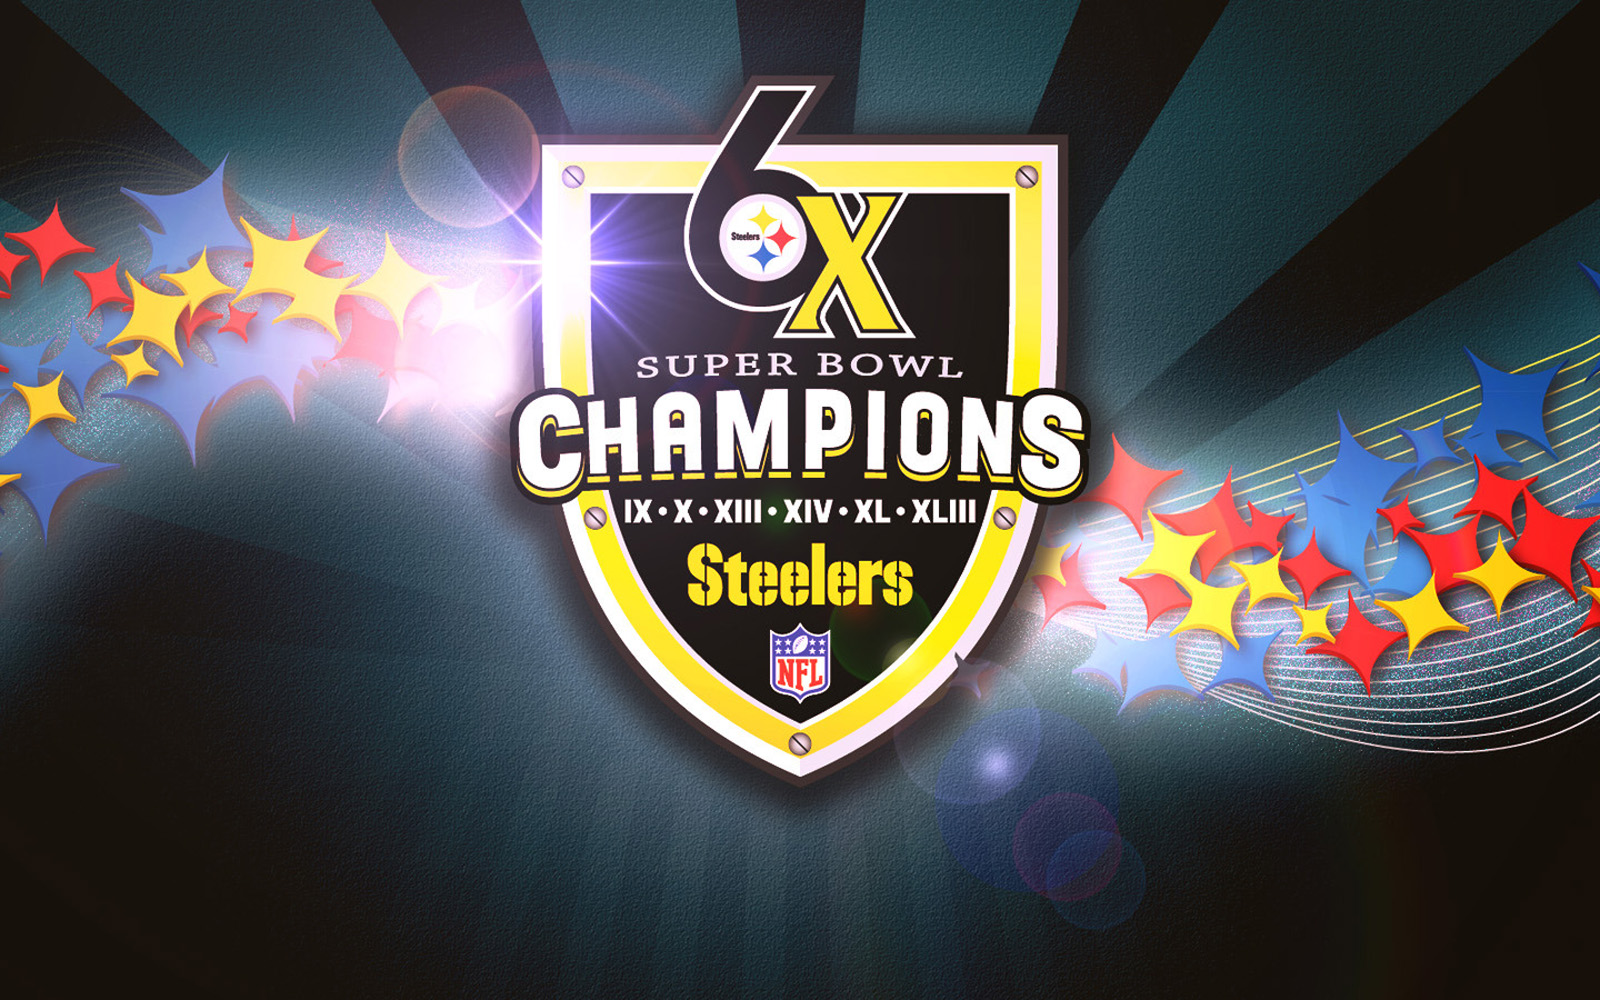 Steelers Nation Wallpaper 2013 Of steelers wallpaper and 1600x1000